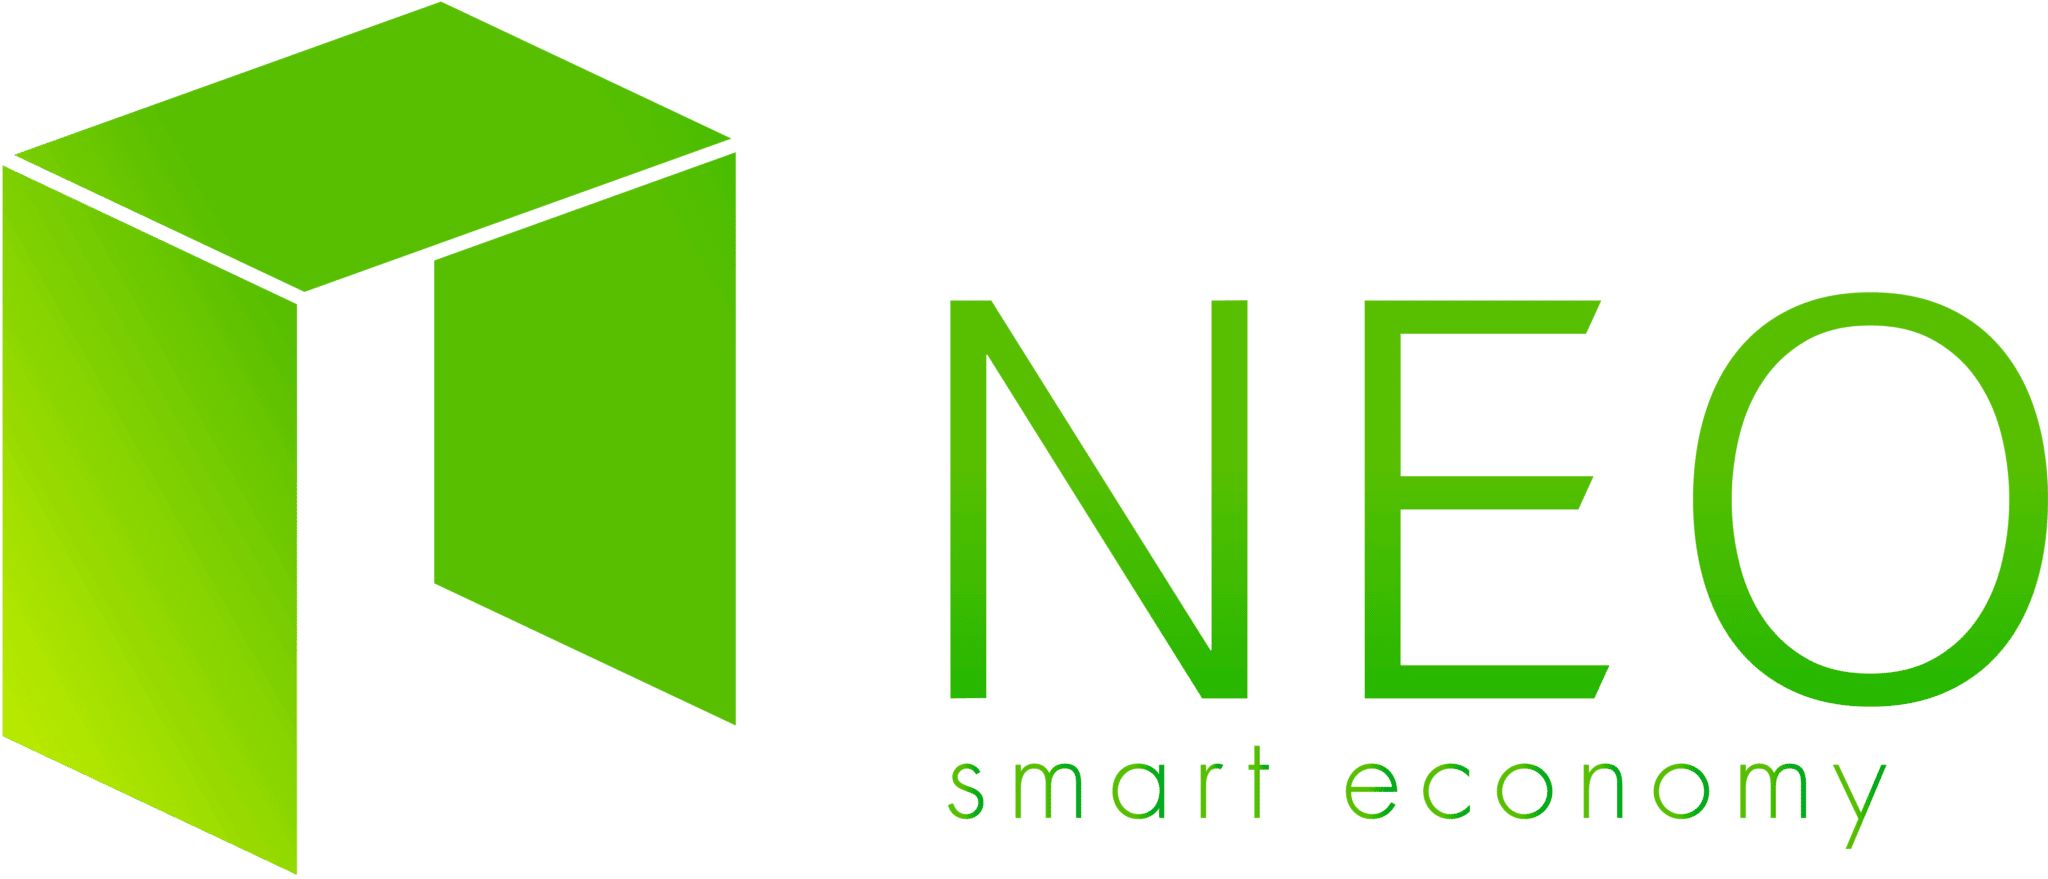 NEO is a cryptocurrency that seeks to be an open network for the smart economy. With that differentiator, should you invest in NEO?